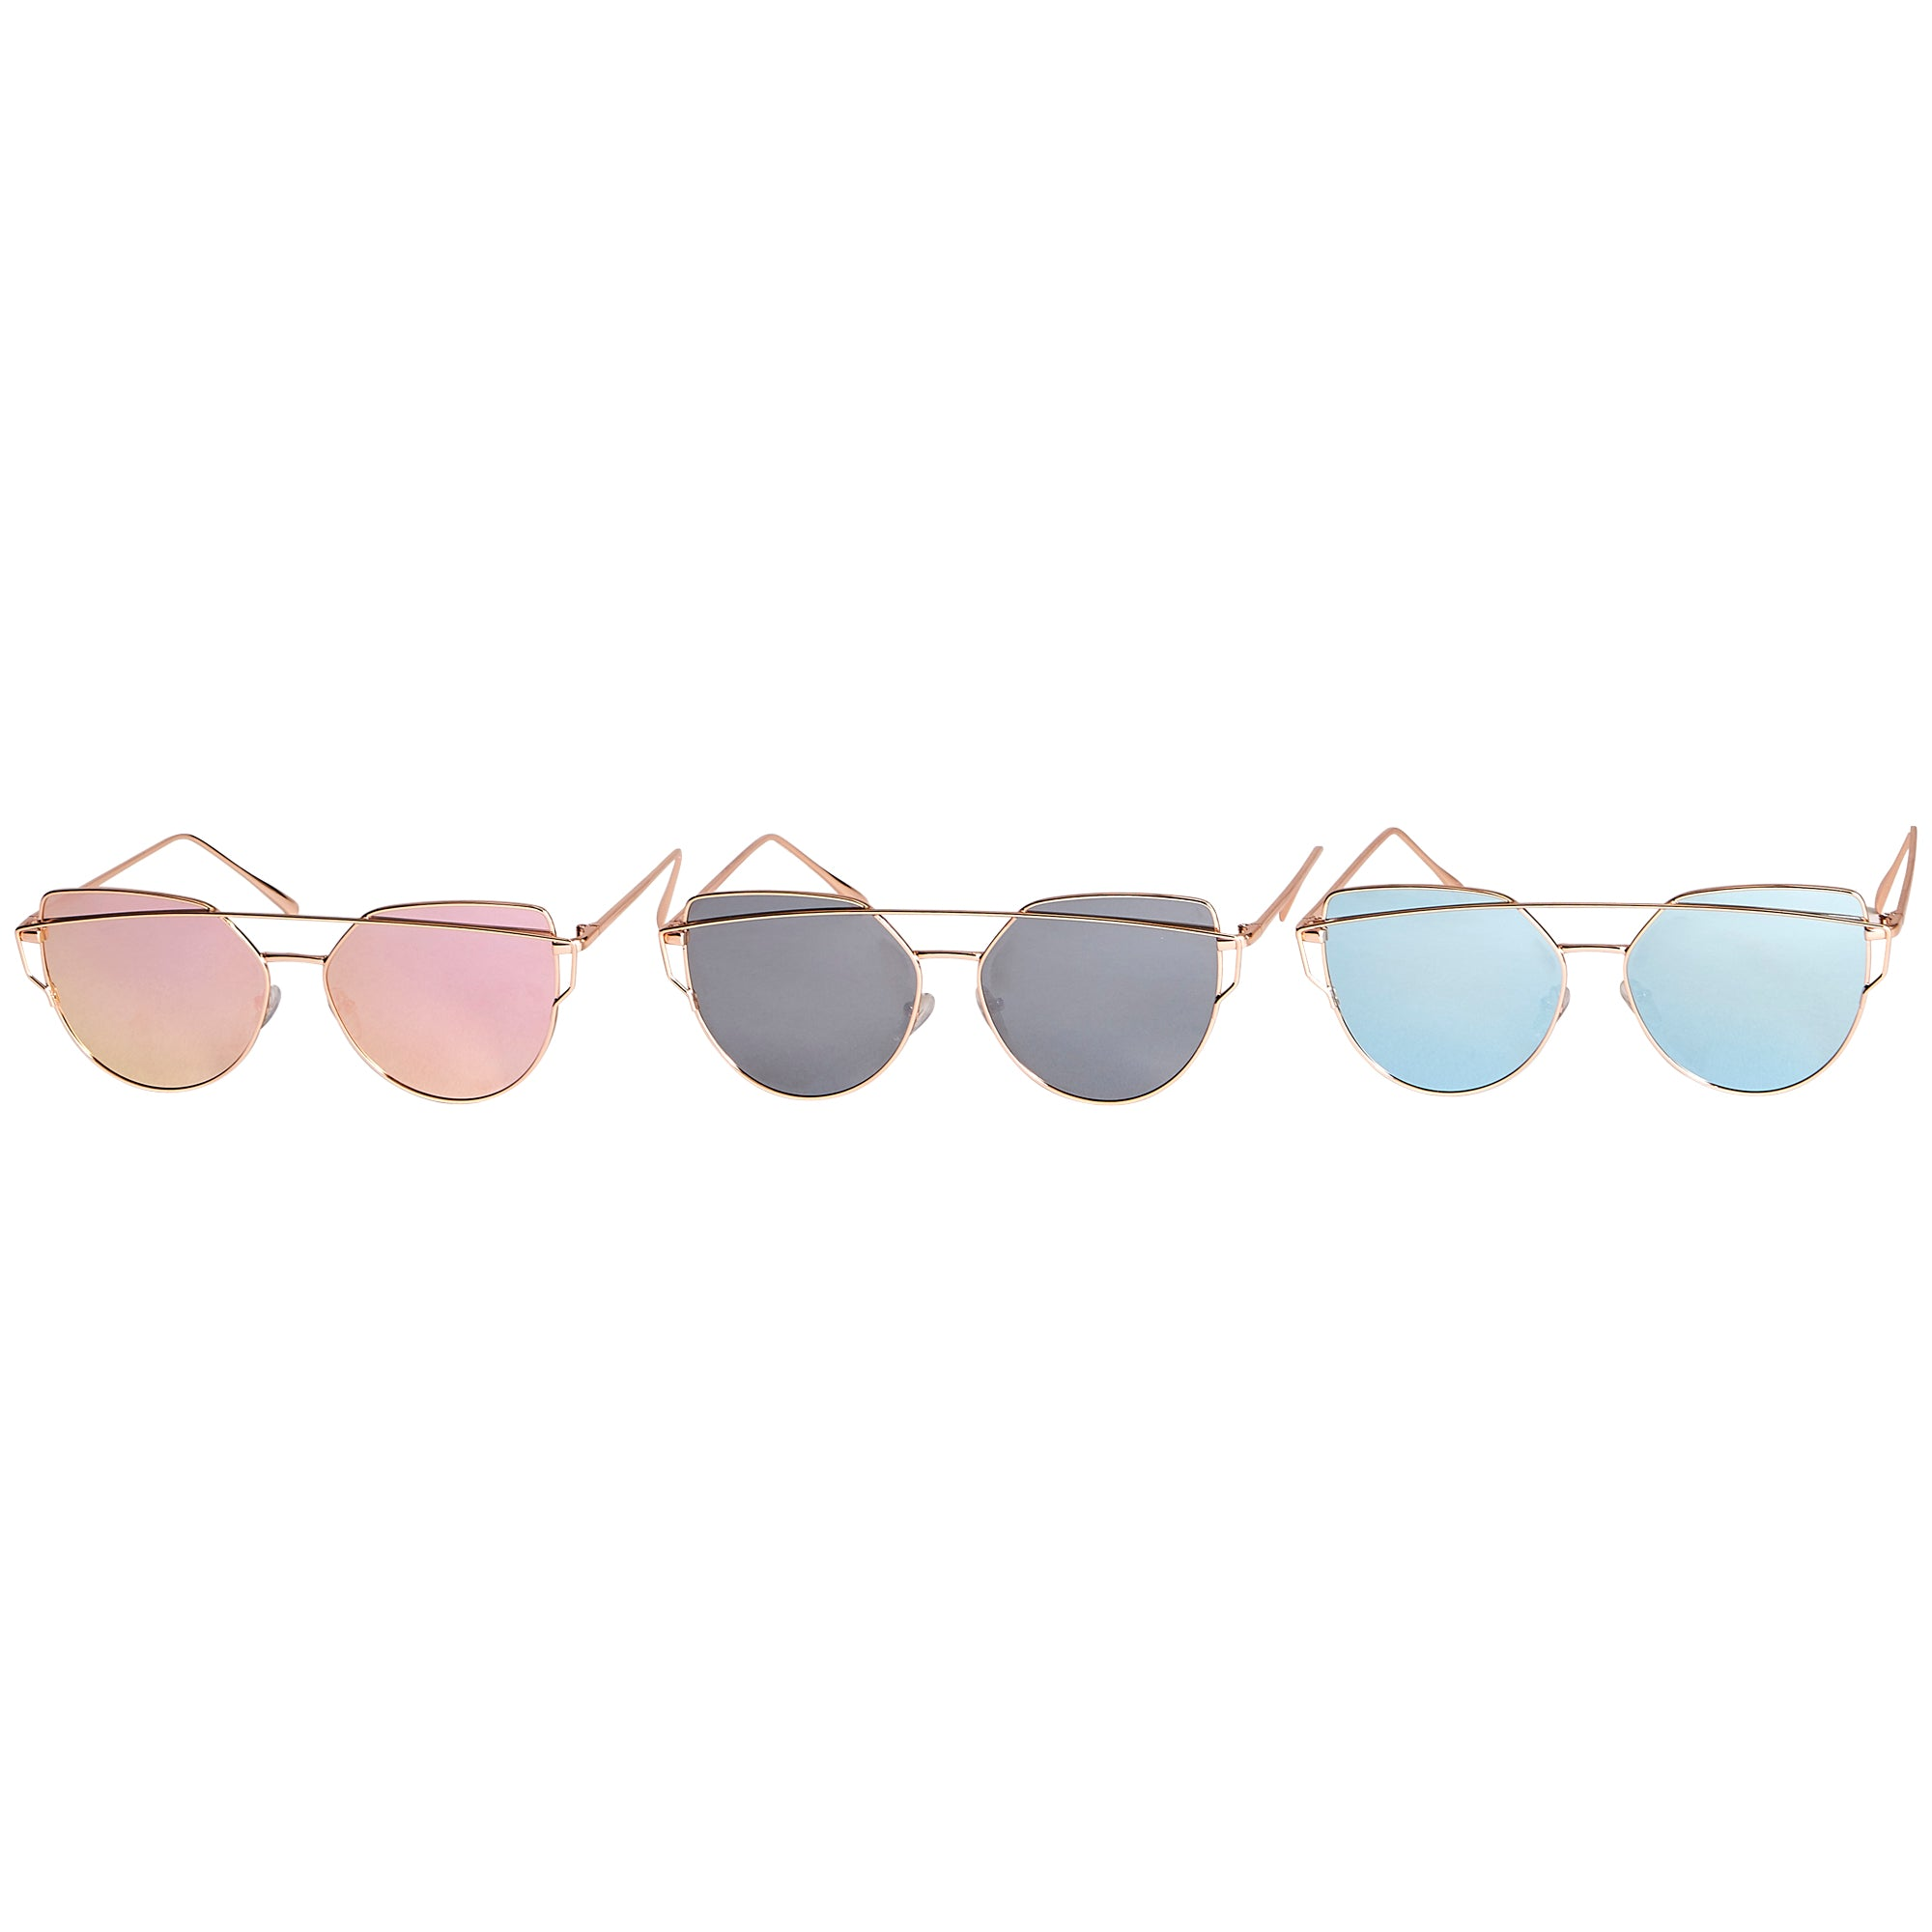 1fdf1b9baa0 Wholesale Boutique Gifts - Roxy Mirror Polarized Cat Eye Sunglasses 3 Pack  - Tickled Pink